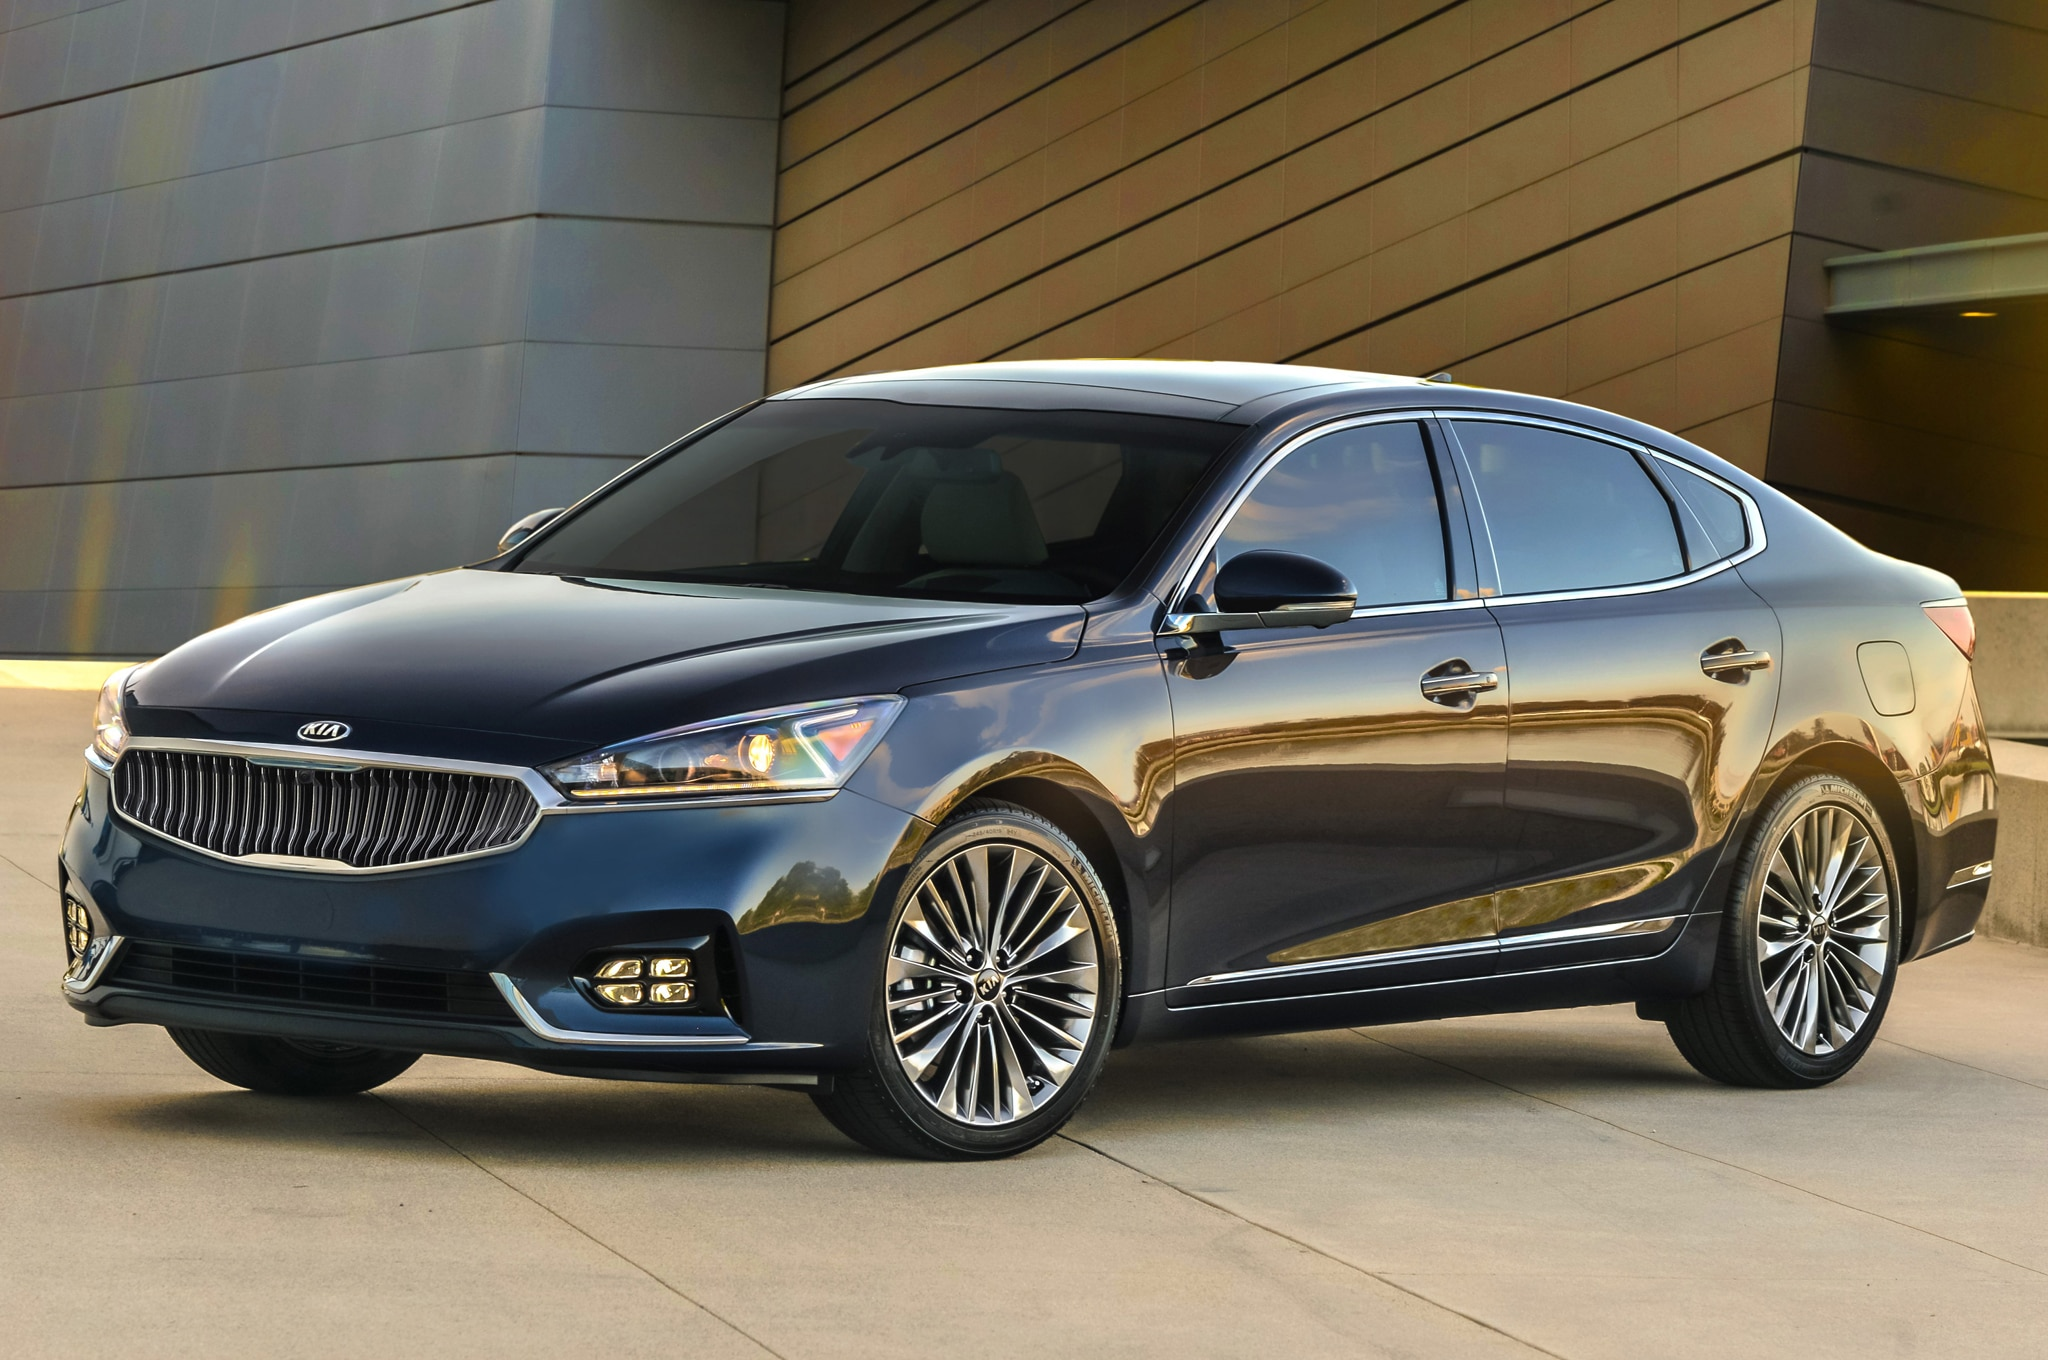 2017 Kia Cadenza Sedan Bows in New York | Automobile Magazine